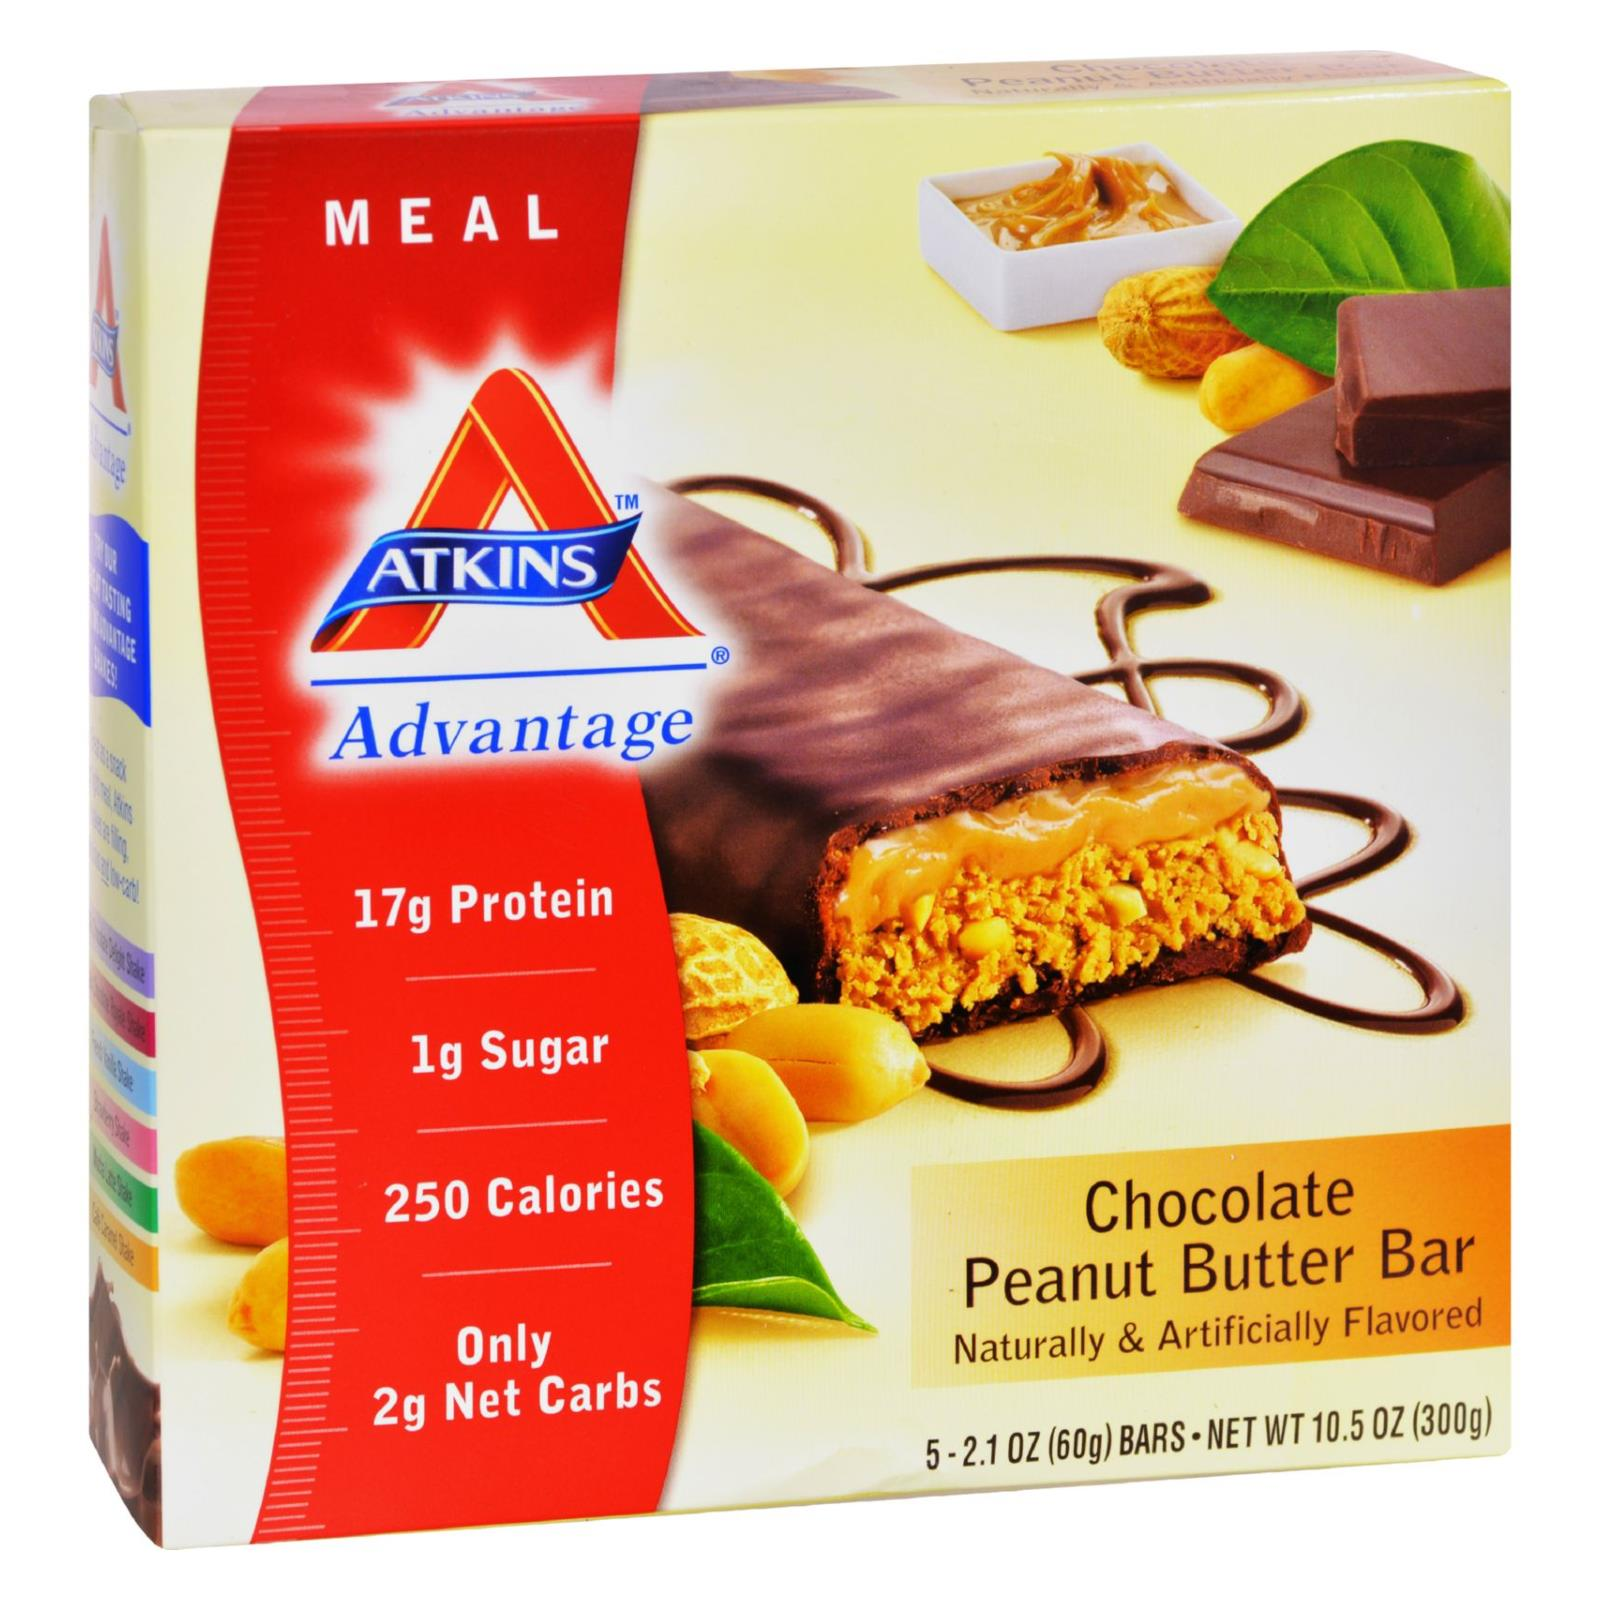 Atkins Advantage Bar Chocolate Peanut Butter - 5 Bars HG0458646